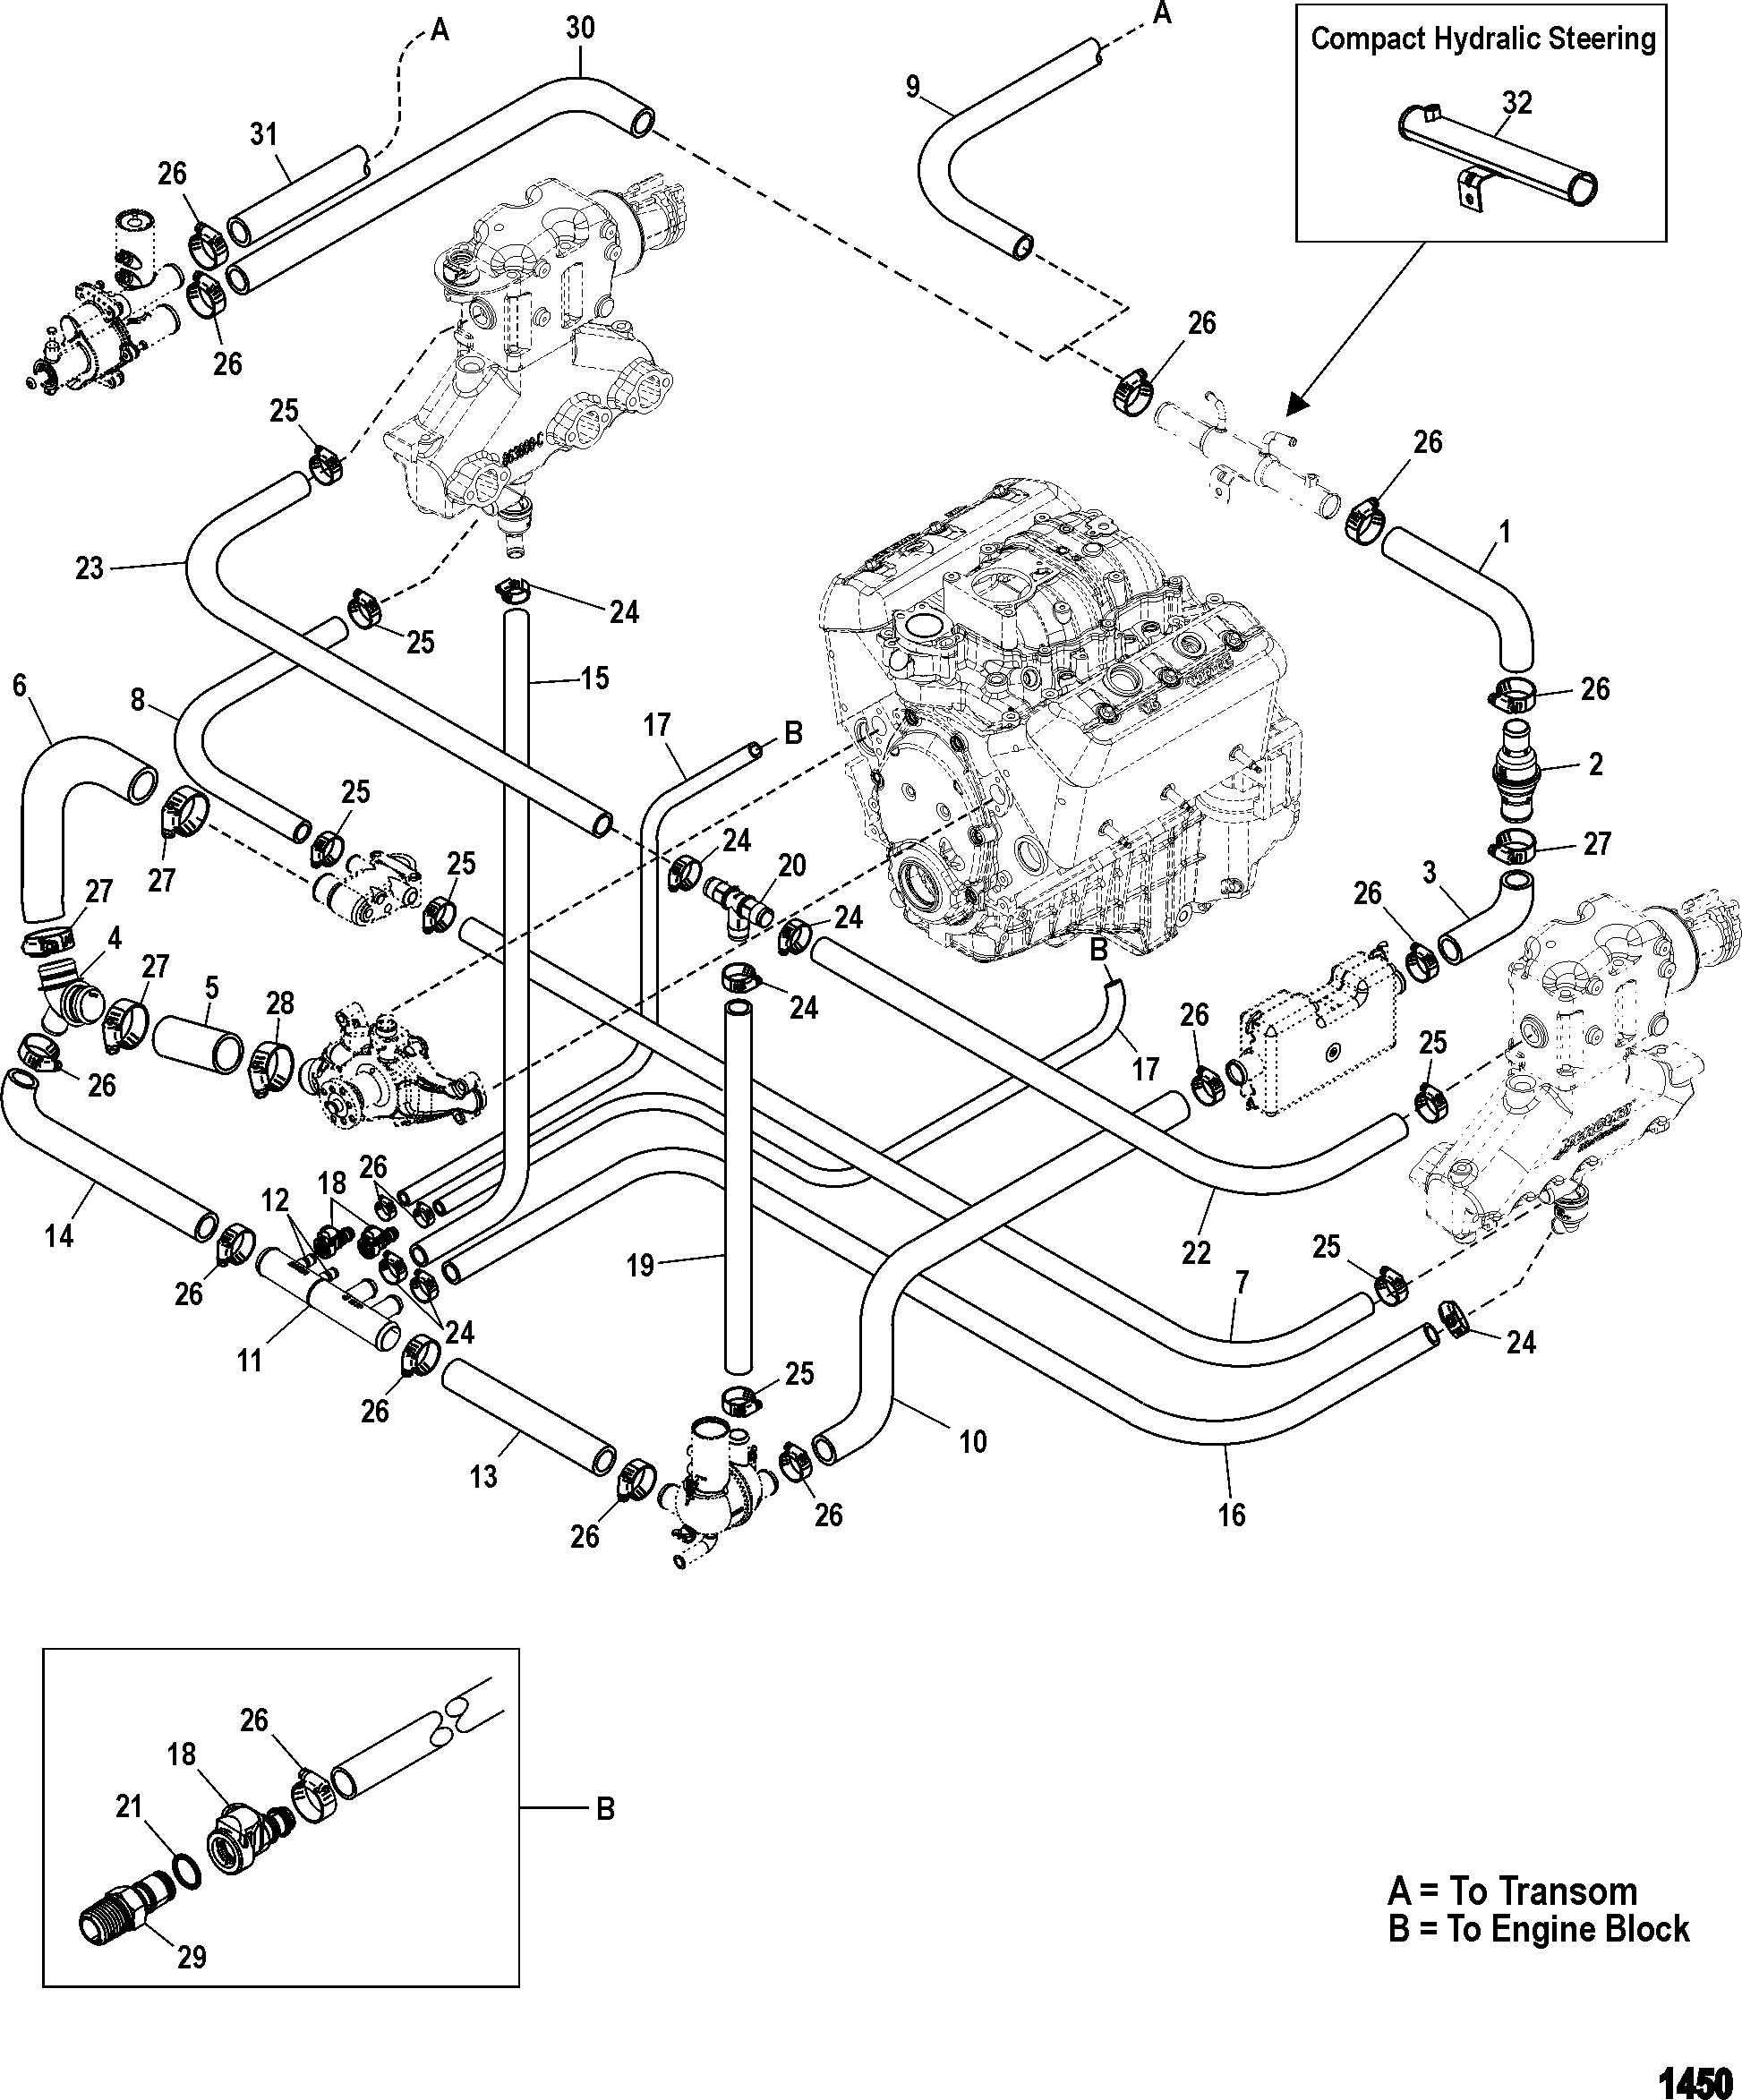 1998 Omc 4 3 V6 Wiring Diagram Another Blog About Engine Trusted Diagrams U2022 Rh Inspiralni Co